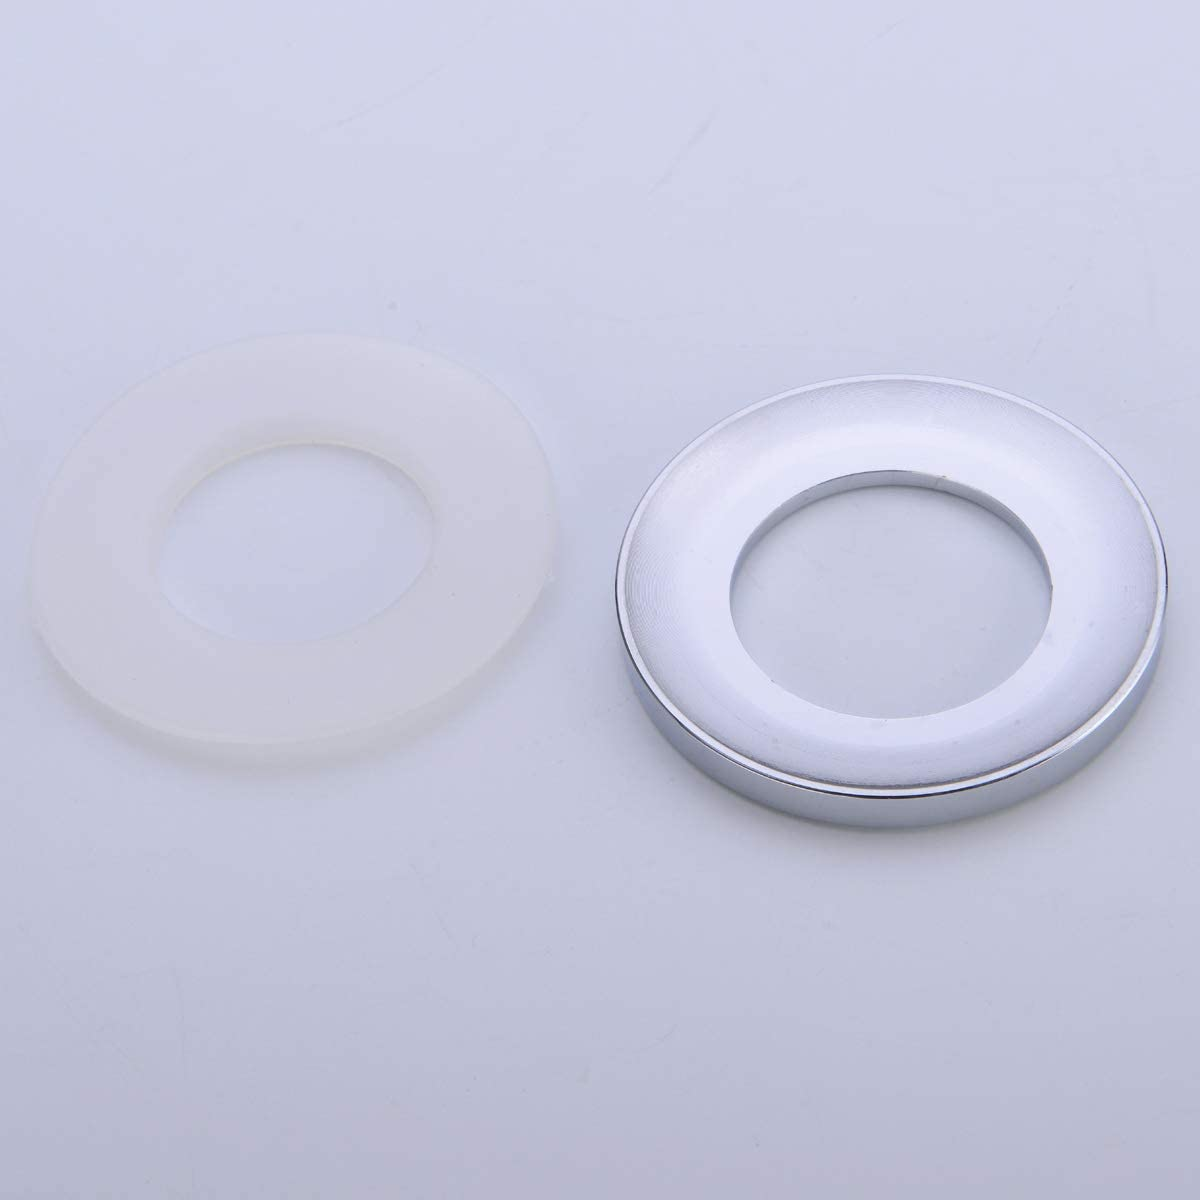 Solid Brass Mounting Ring for Bathroom Glass Vessel Sink 1//3 inch